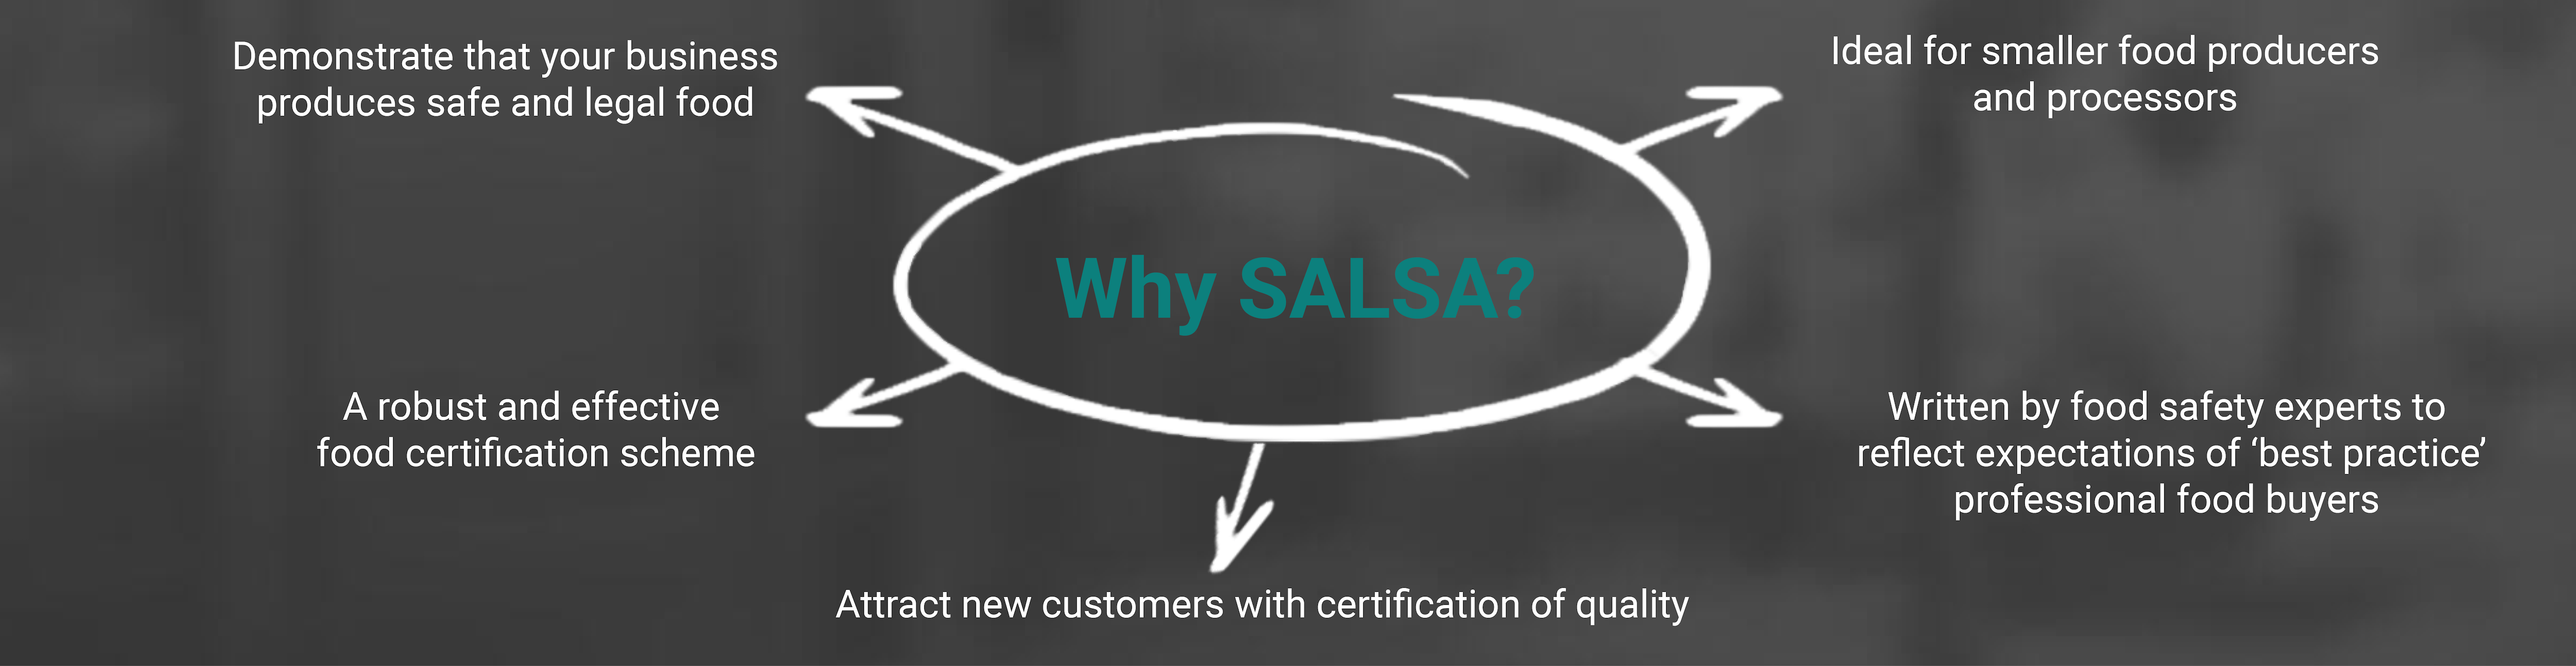 SALSA Diagram